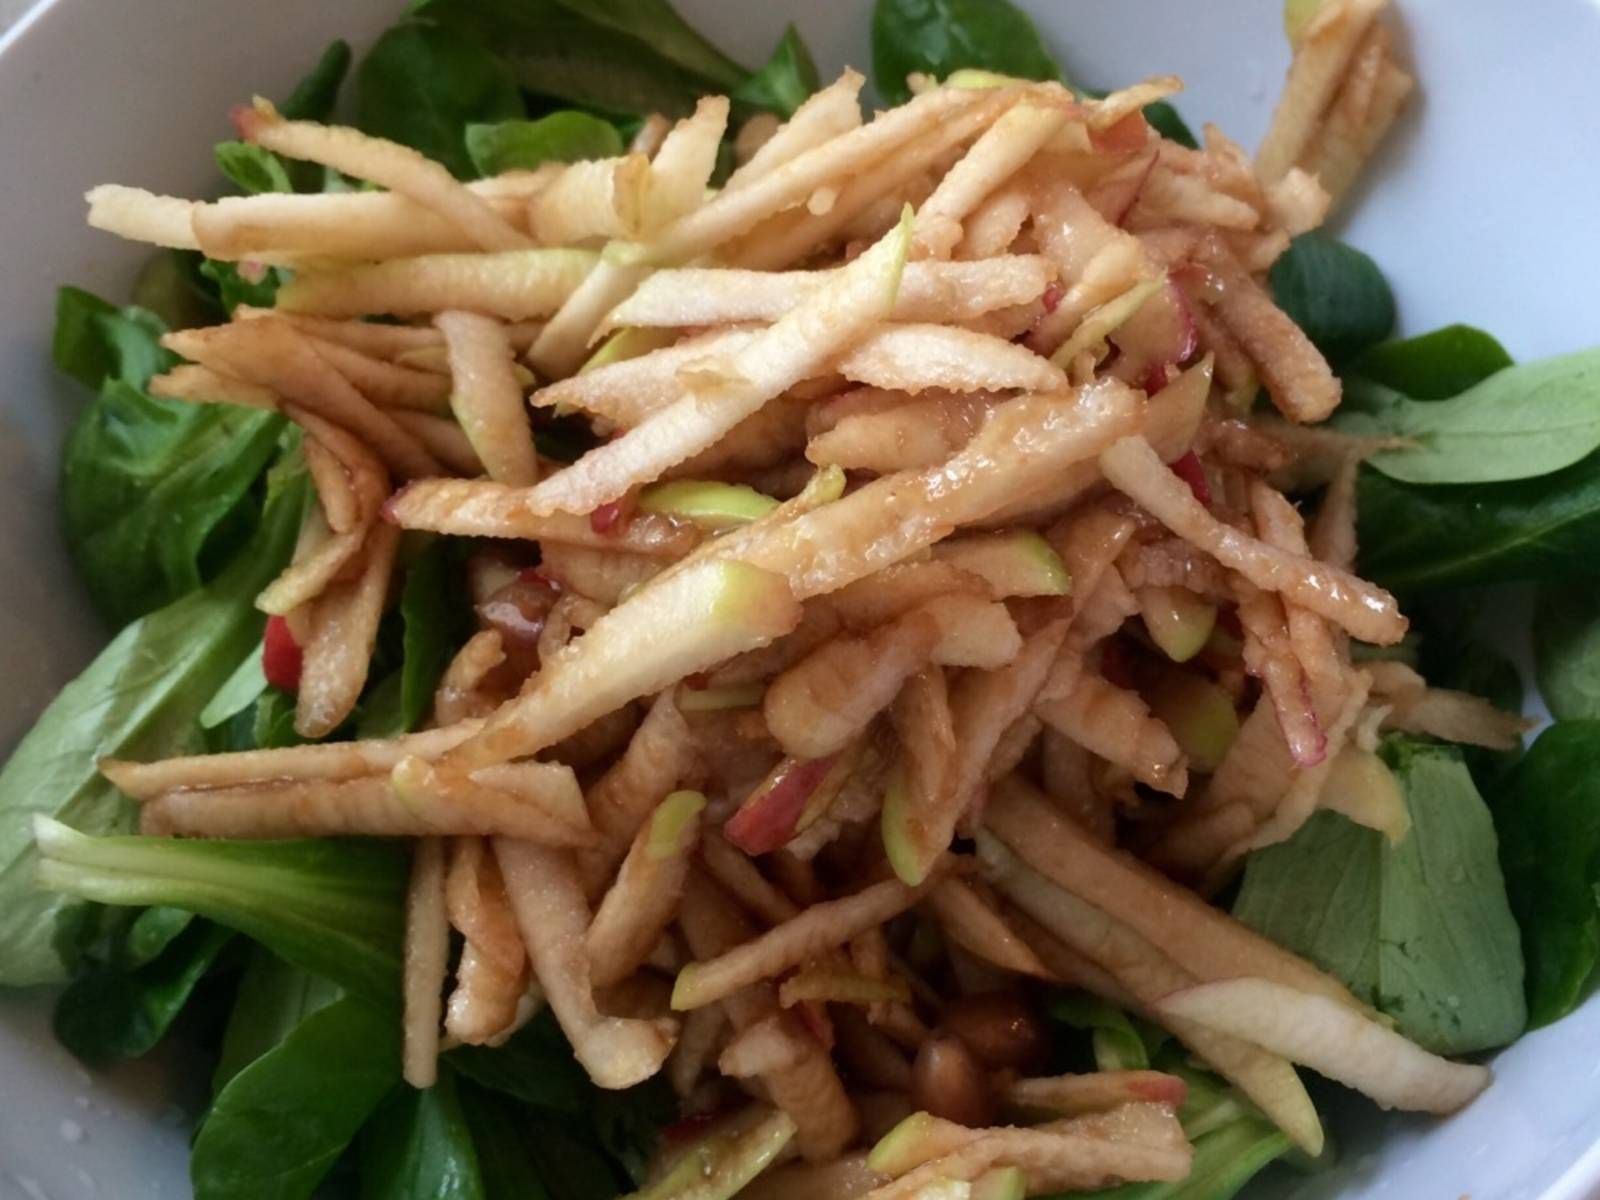 Grate apples. Combine olive oil, balsamic vinegar, and pomegranate juice, then use to marinate grated apple. Wash lamb's lettuce and put in a large bowl together with the apple.